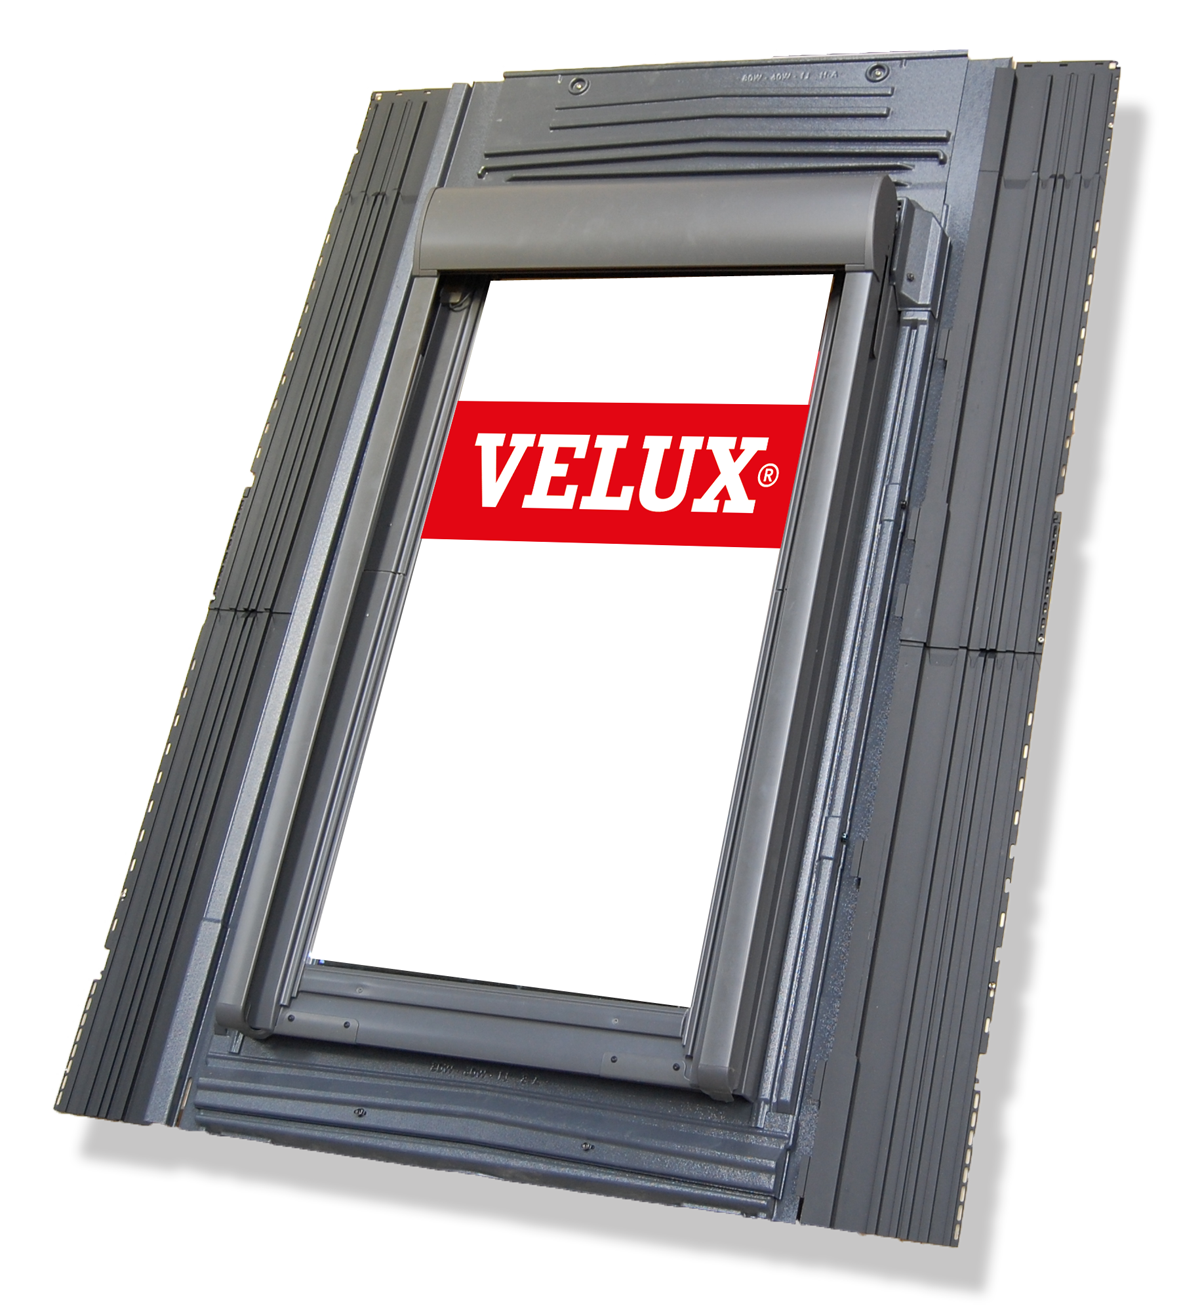 kit d 39 int gration pour fen tres velux irfts. Black Bedroom Furniture Sets. Home Design Ideas